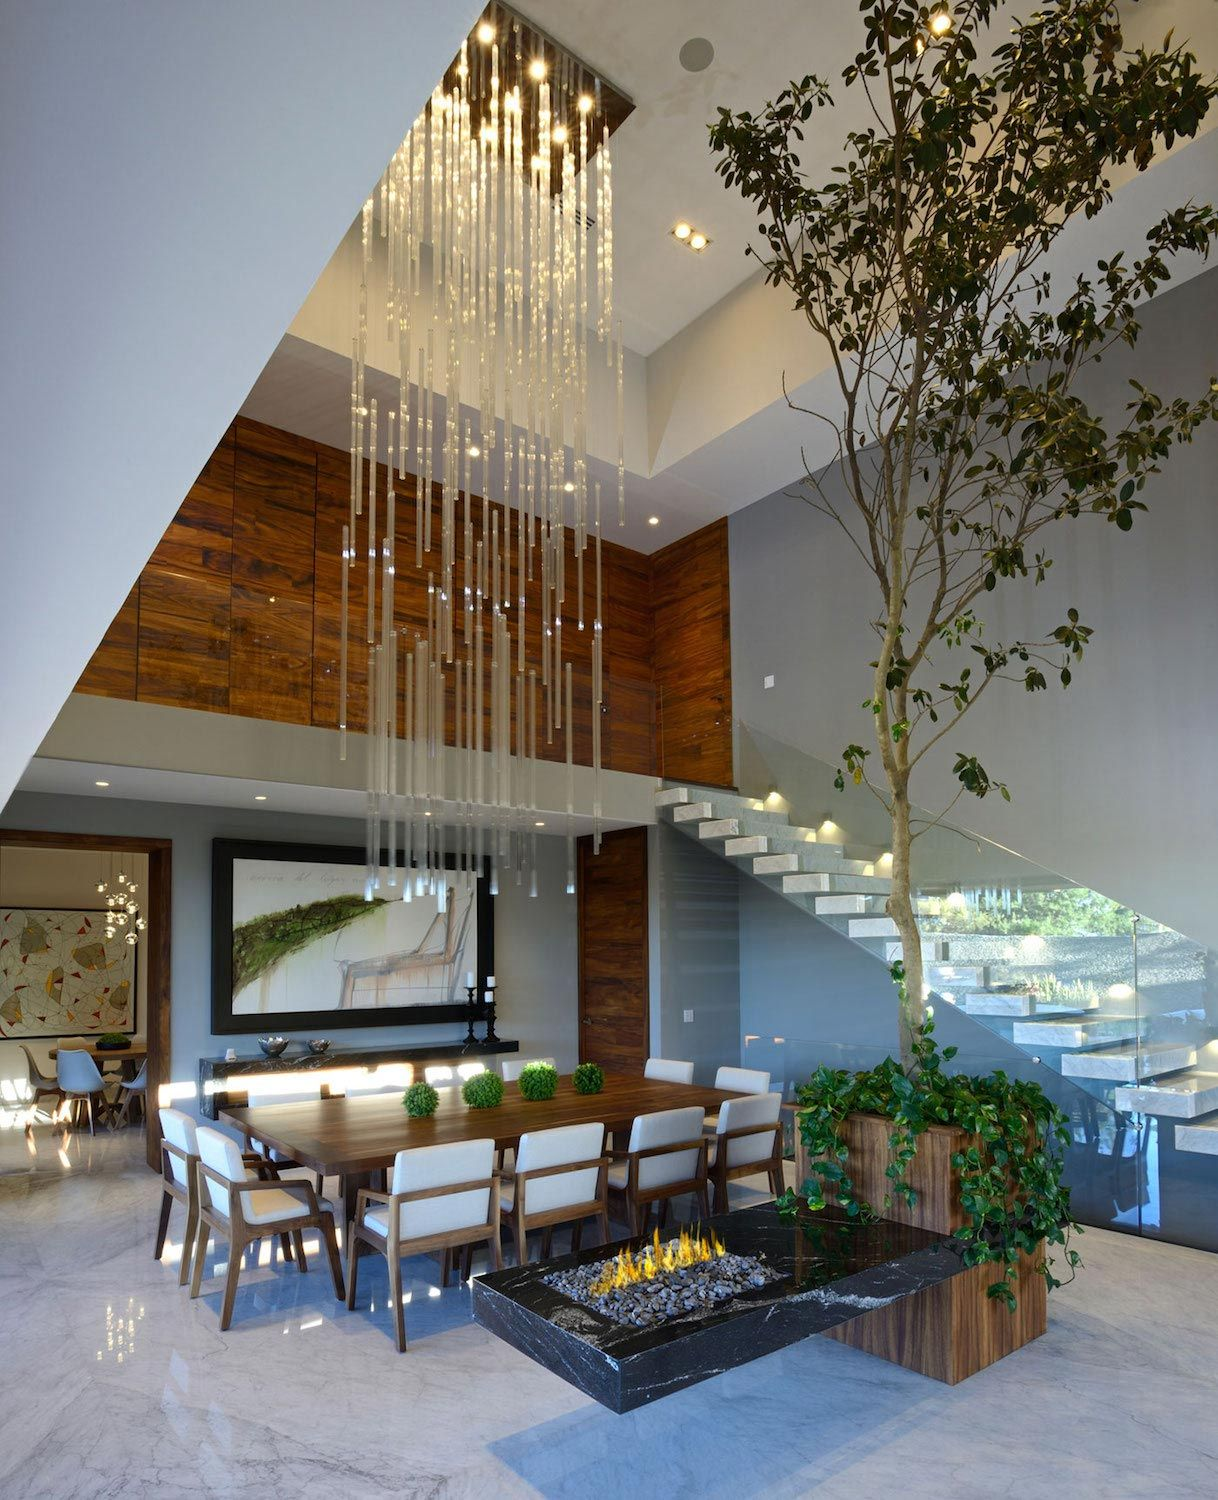 Three Rooms Apartment With A Big Modern Kitchen: Modern Atrium House With Large Double-height Space Living